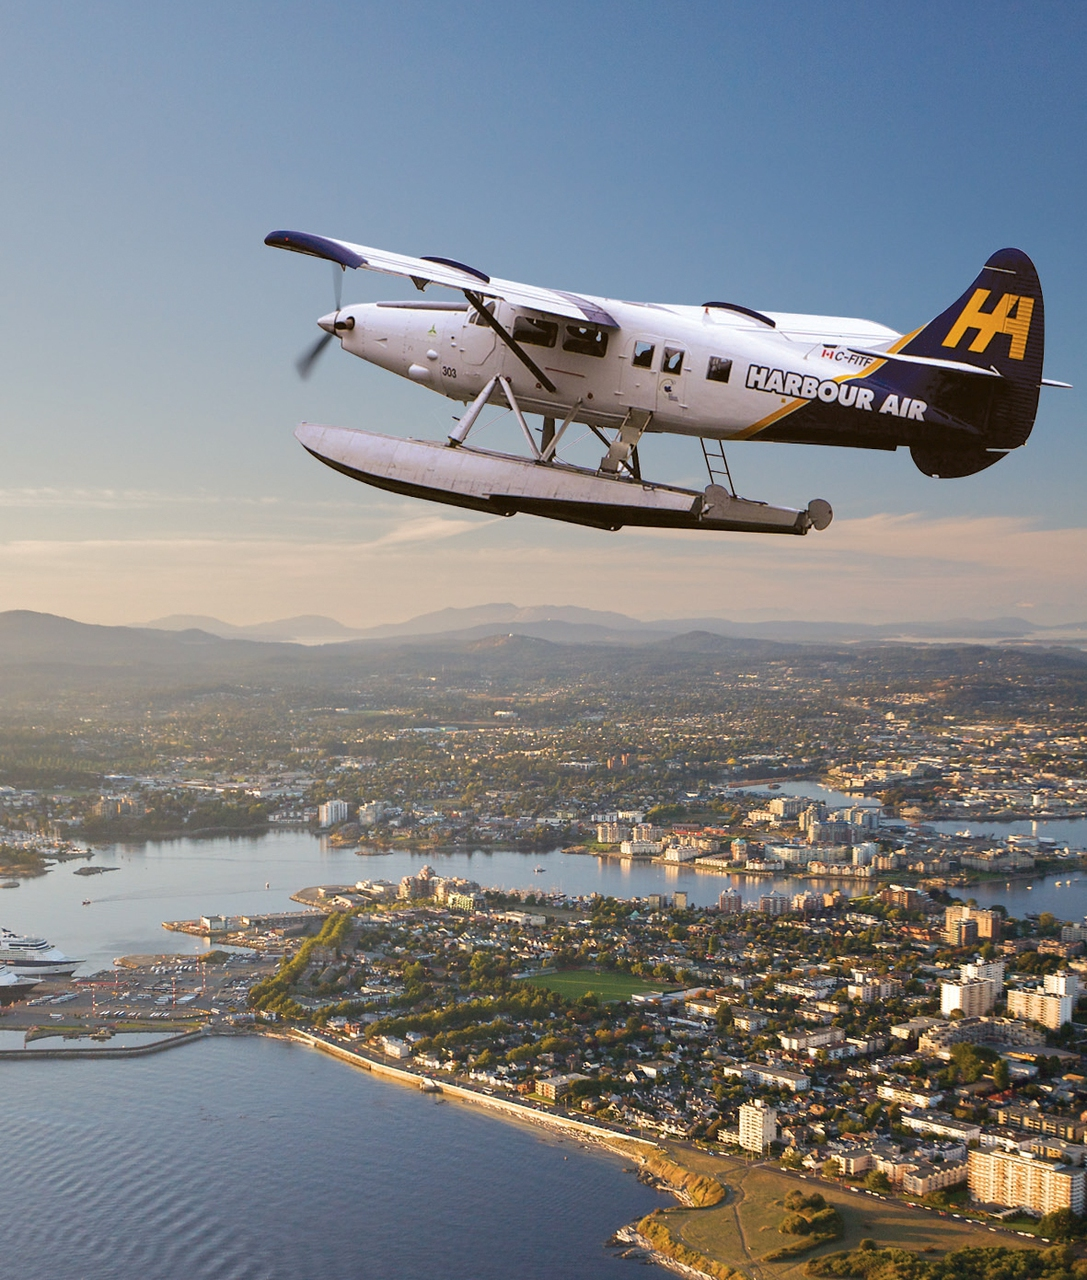 Floatplane Ride Home With Harbour Air - Traveling Islanders